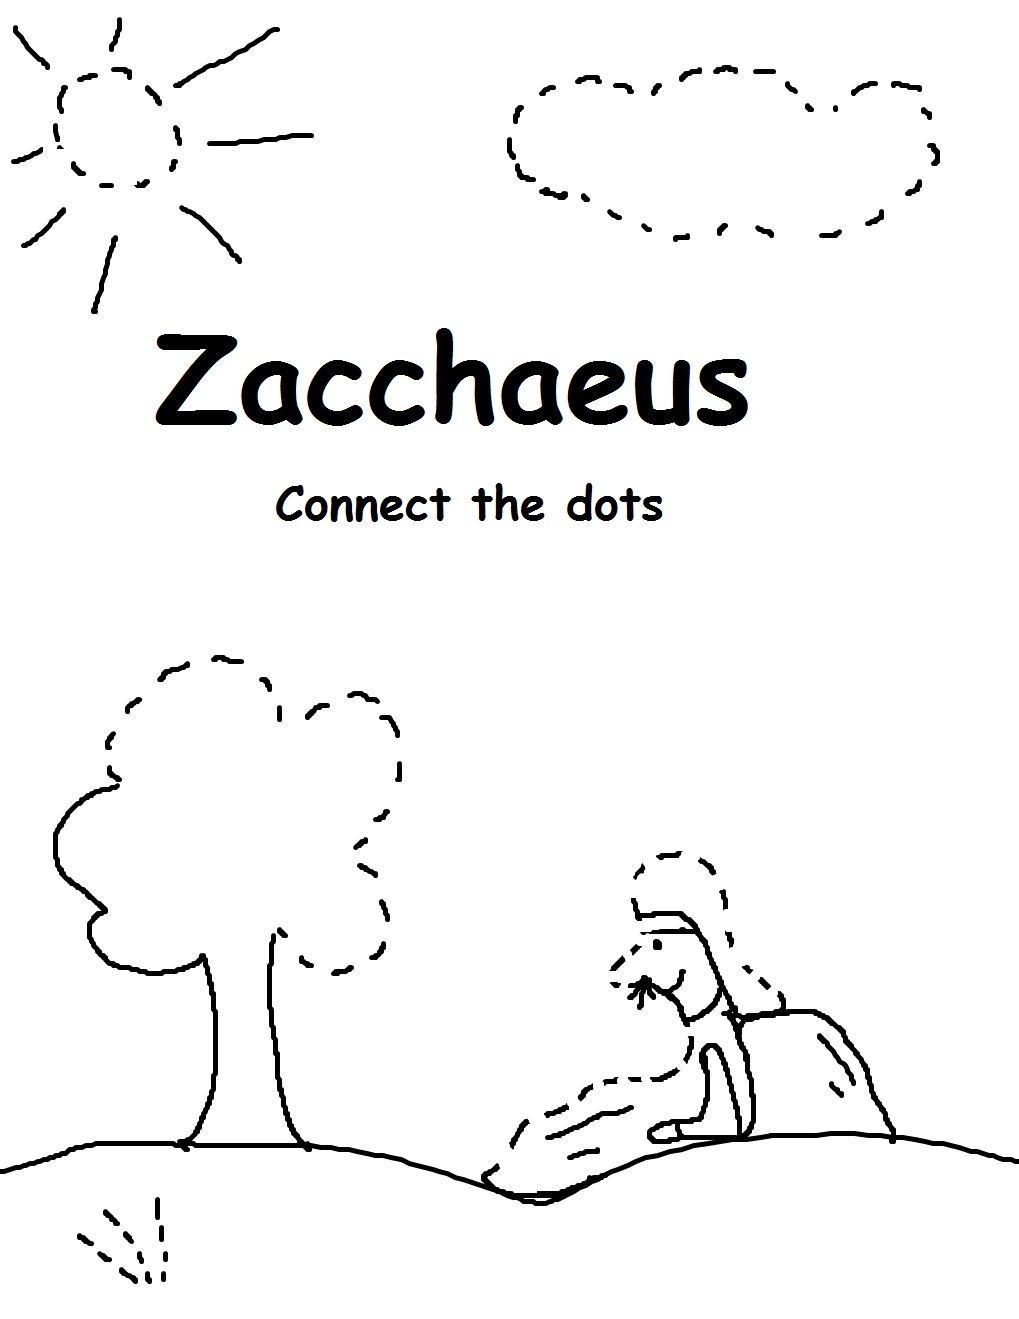 Zacchaeus Sunday School Lesson